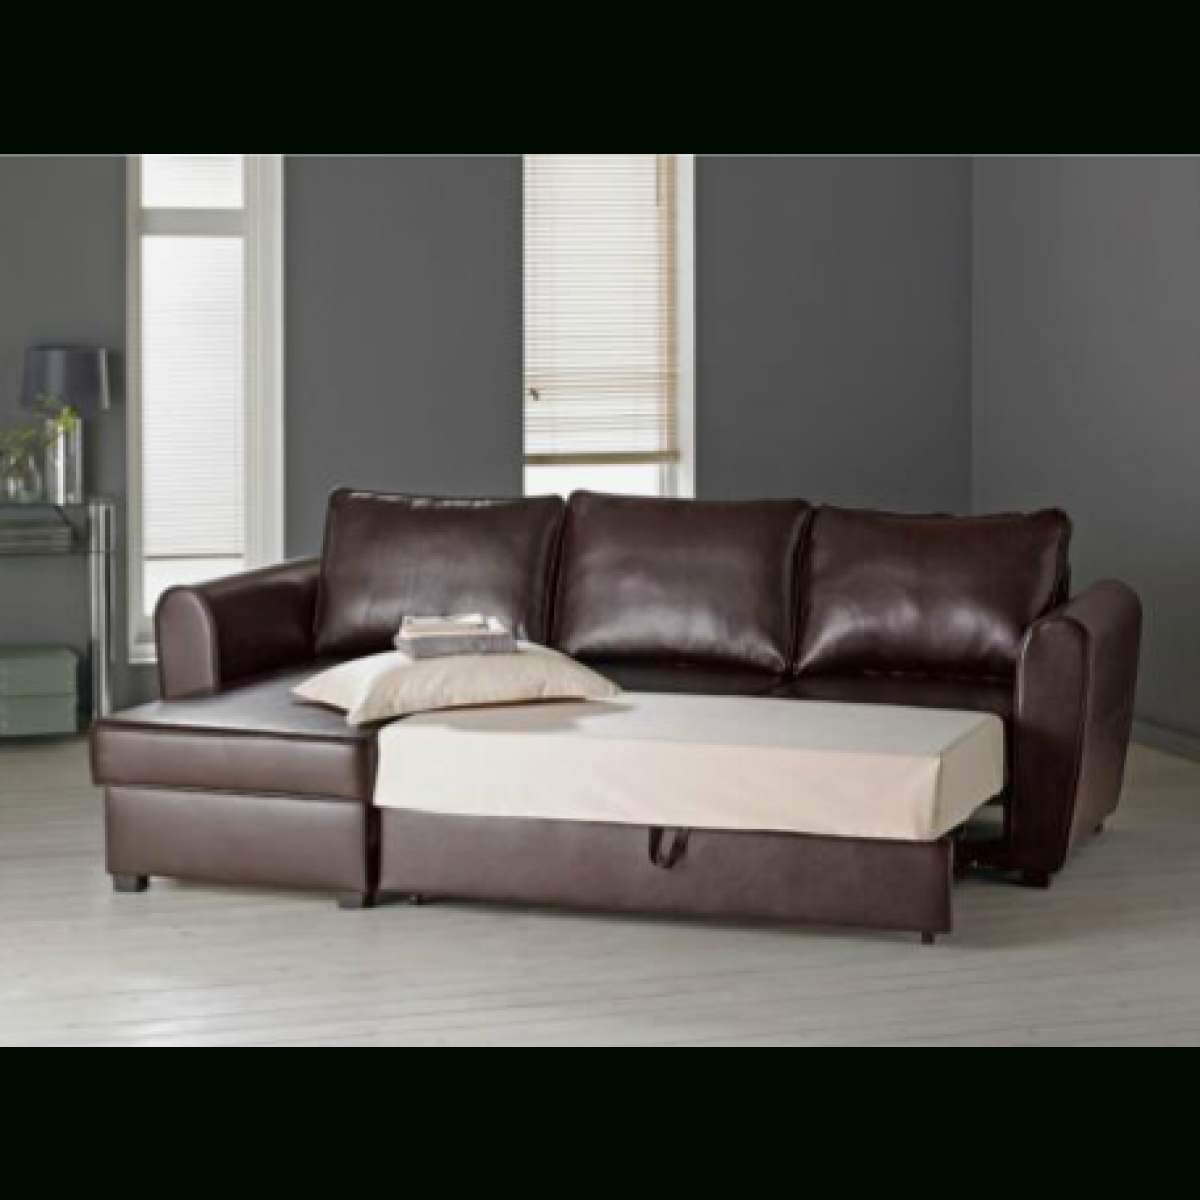 Storage Sofas Regarding Best And Newest Siena Leather Effect Corner Sofa Bed With Storage Chocolate (View 13 of 20)